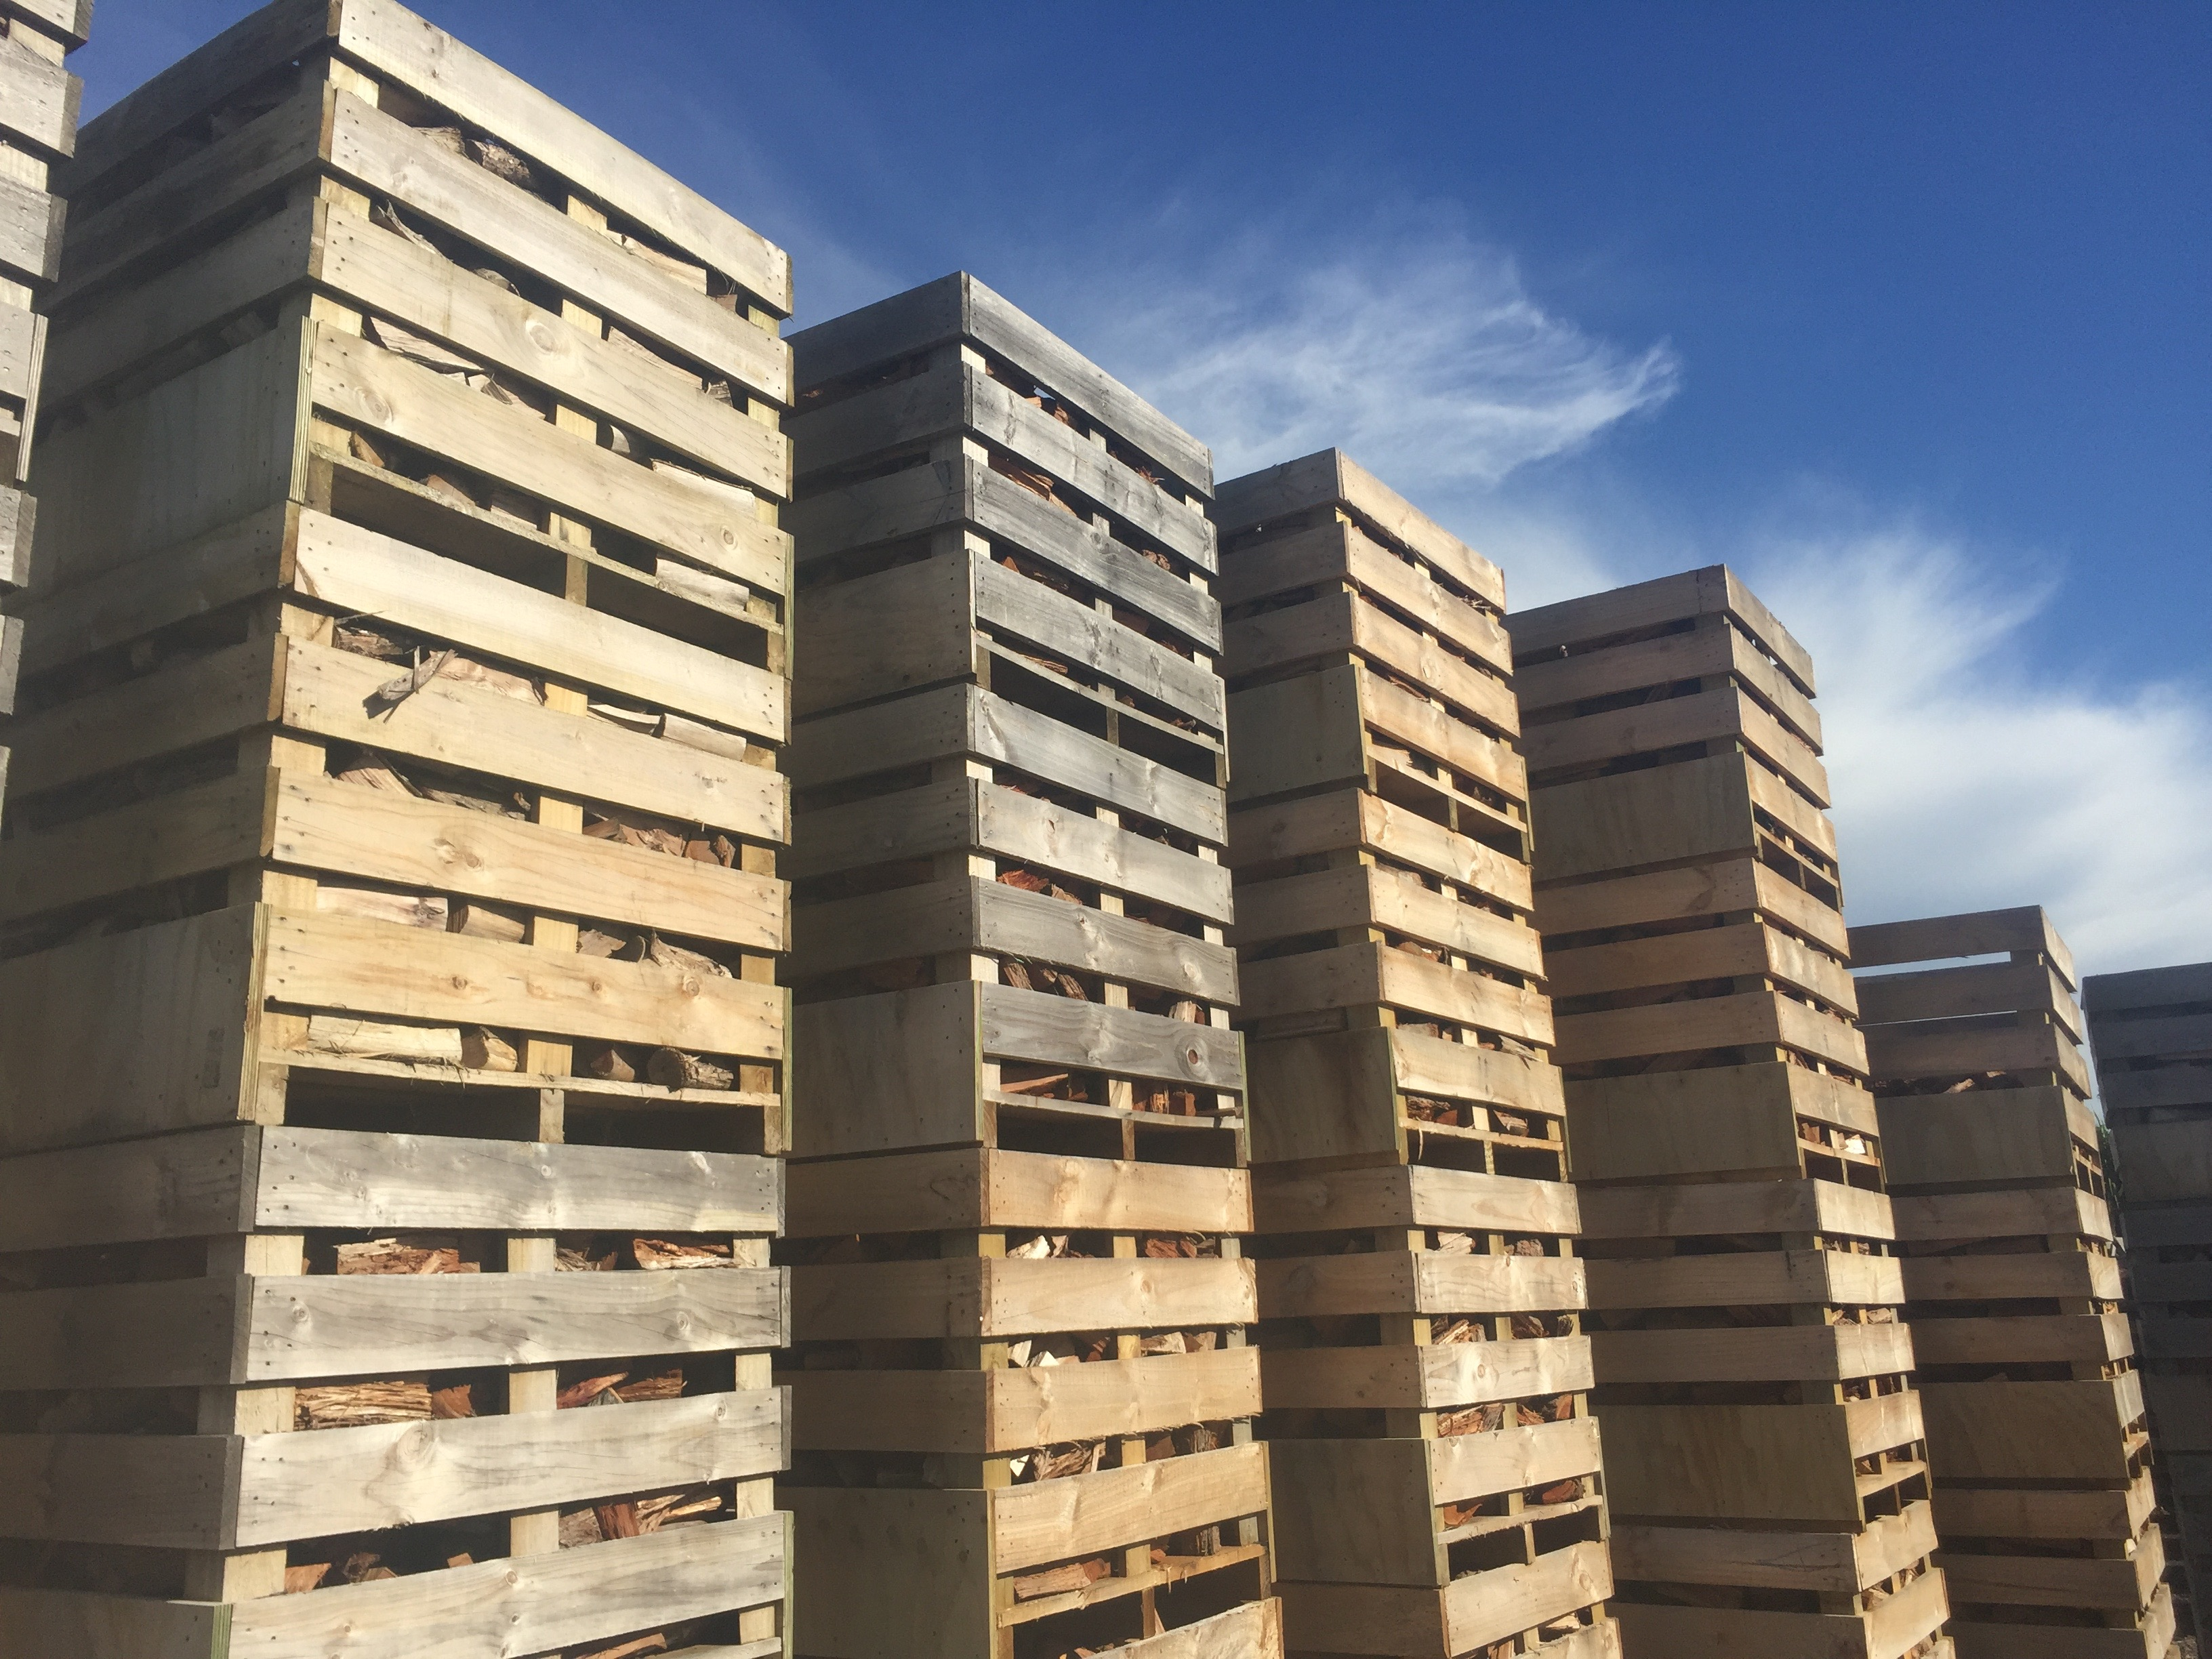 Stacked crates of dry Auckland firewood